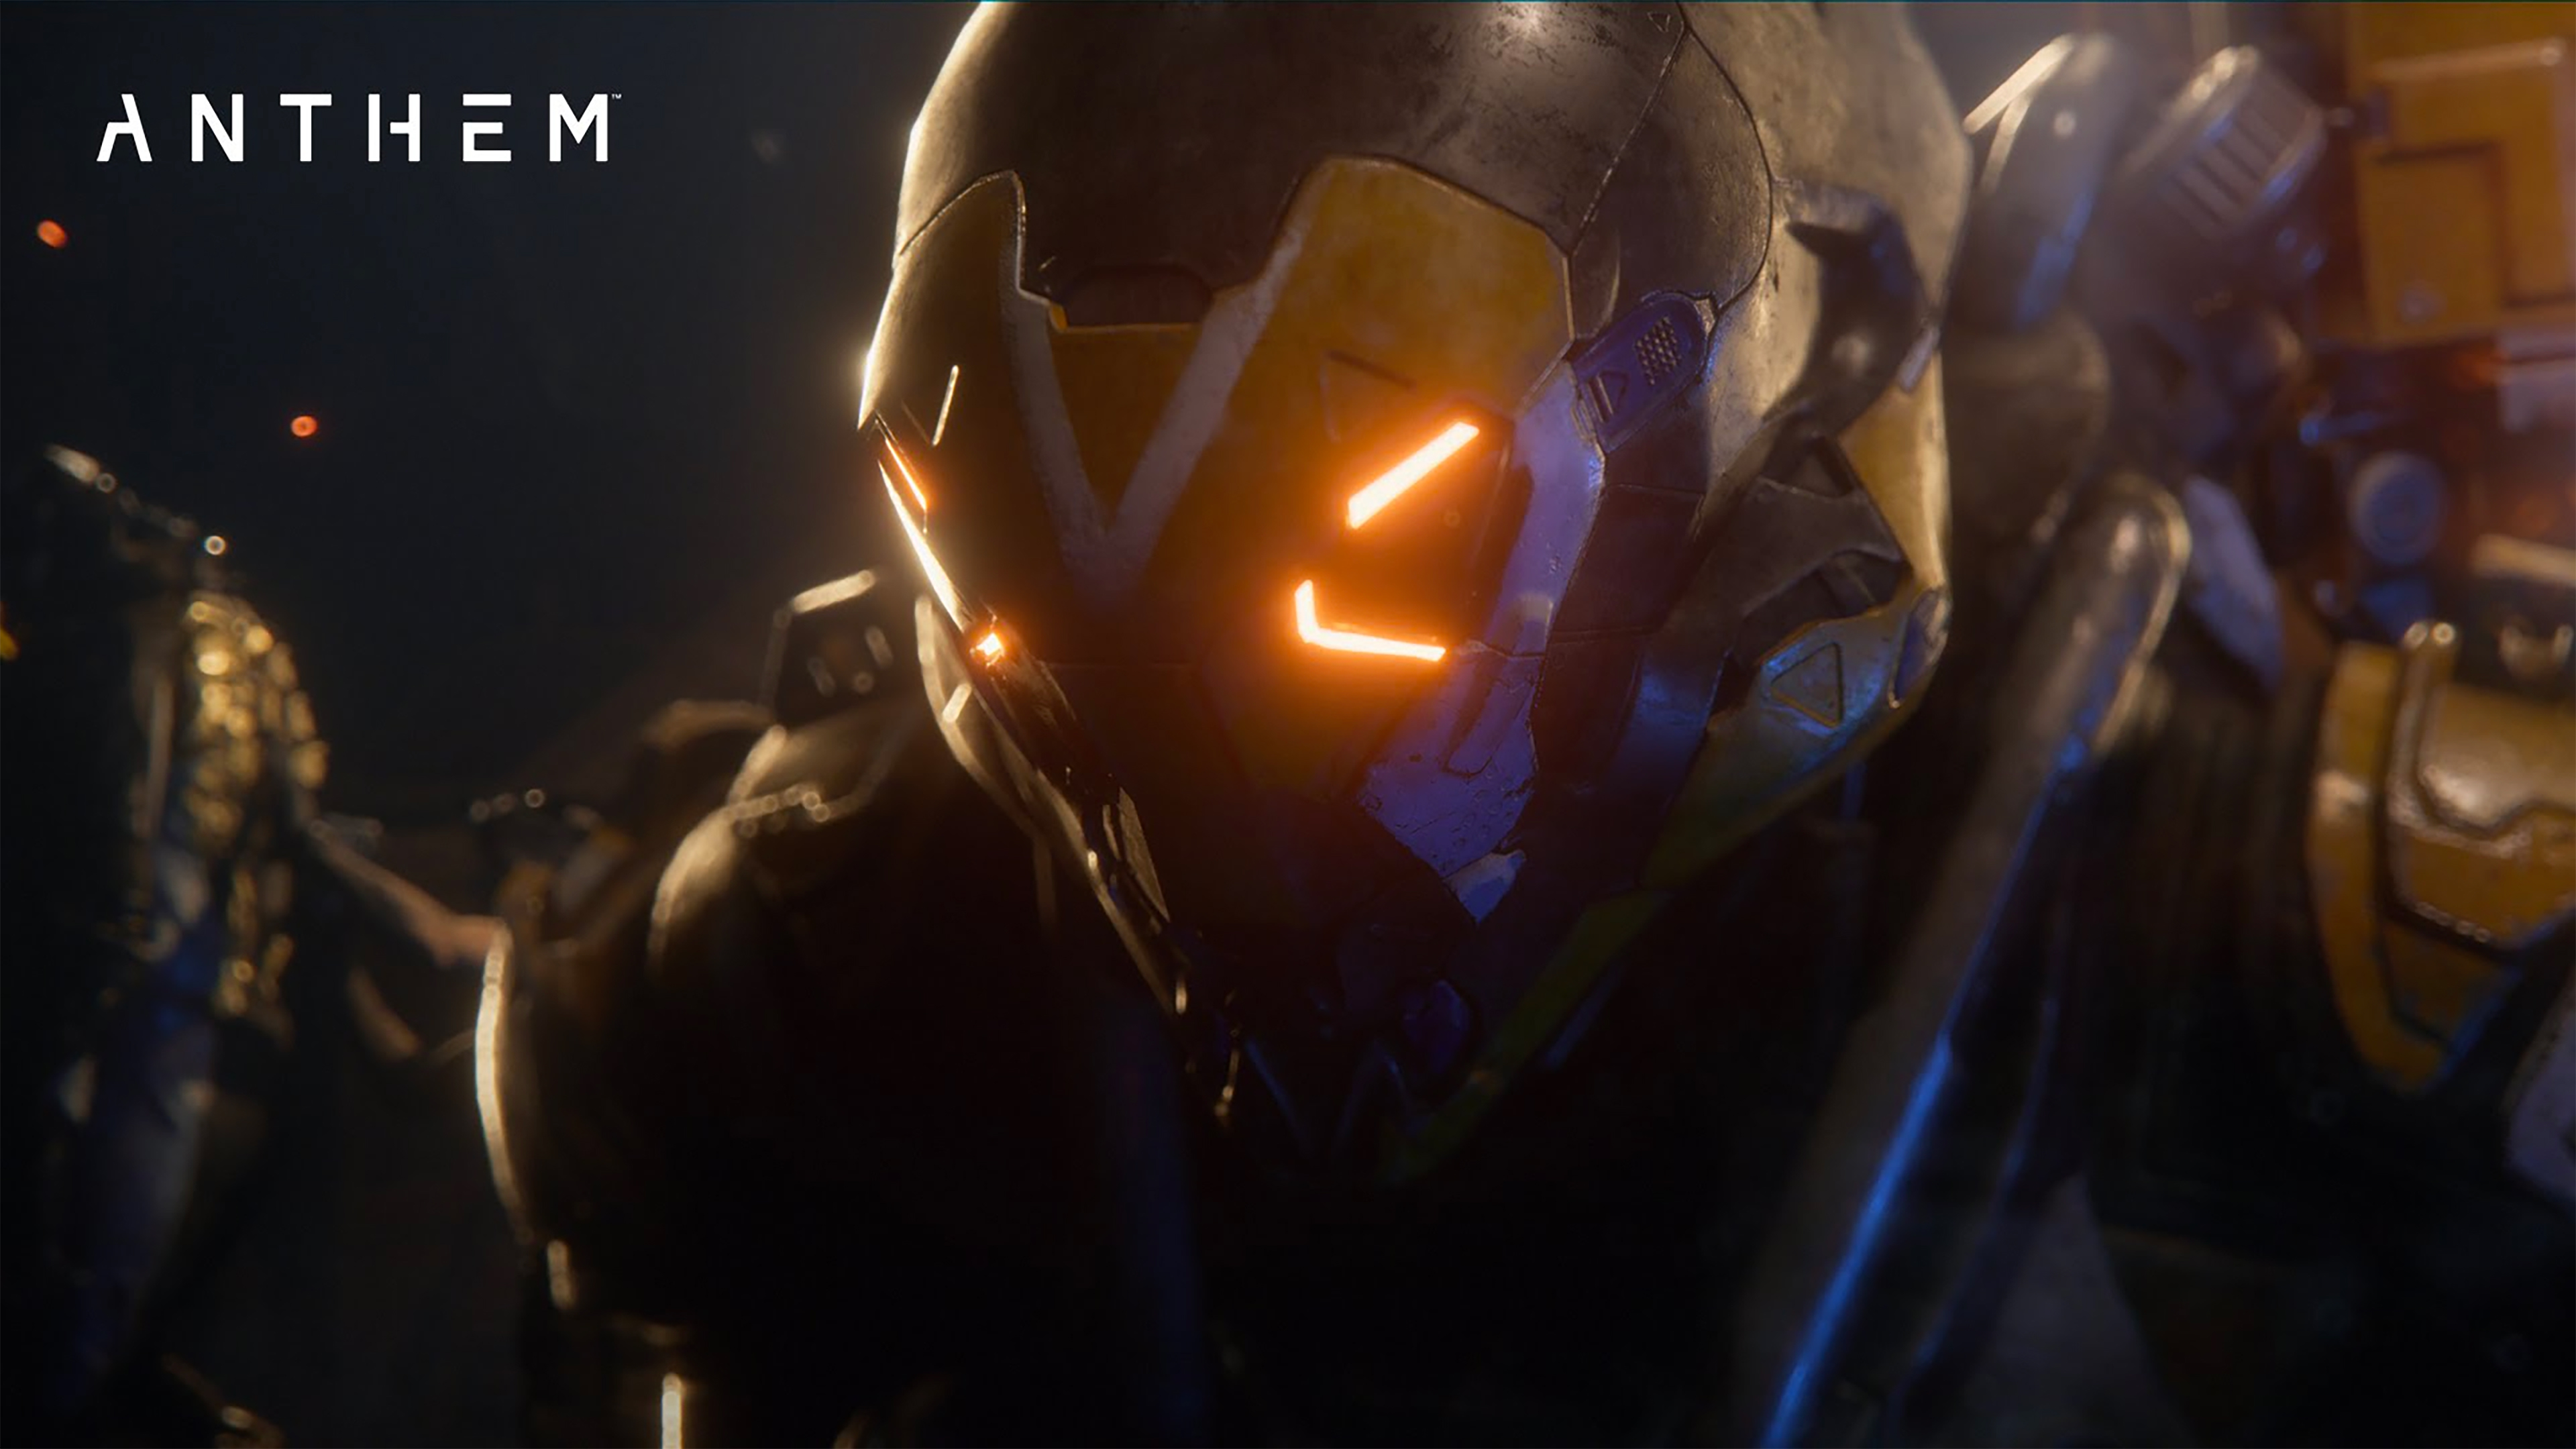 Anthem Wallpapers In Ultra Hd 4k Gameranx